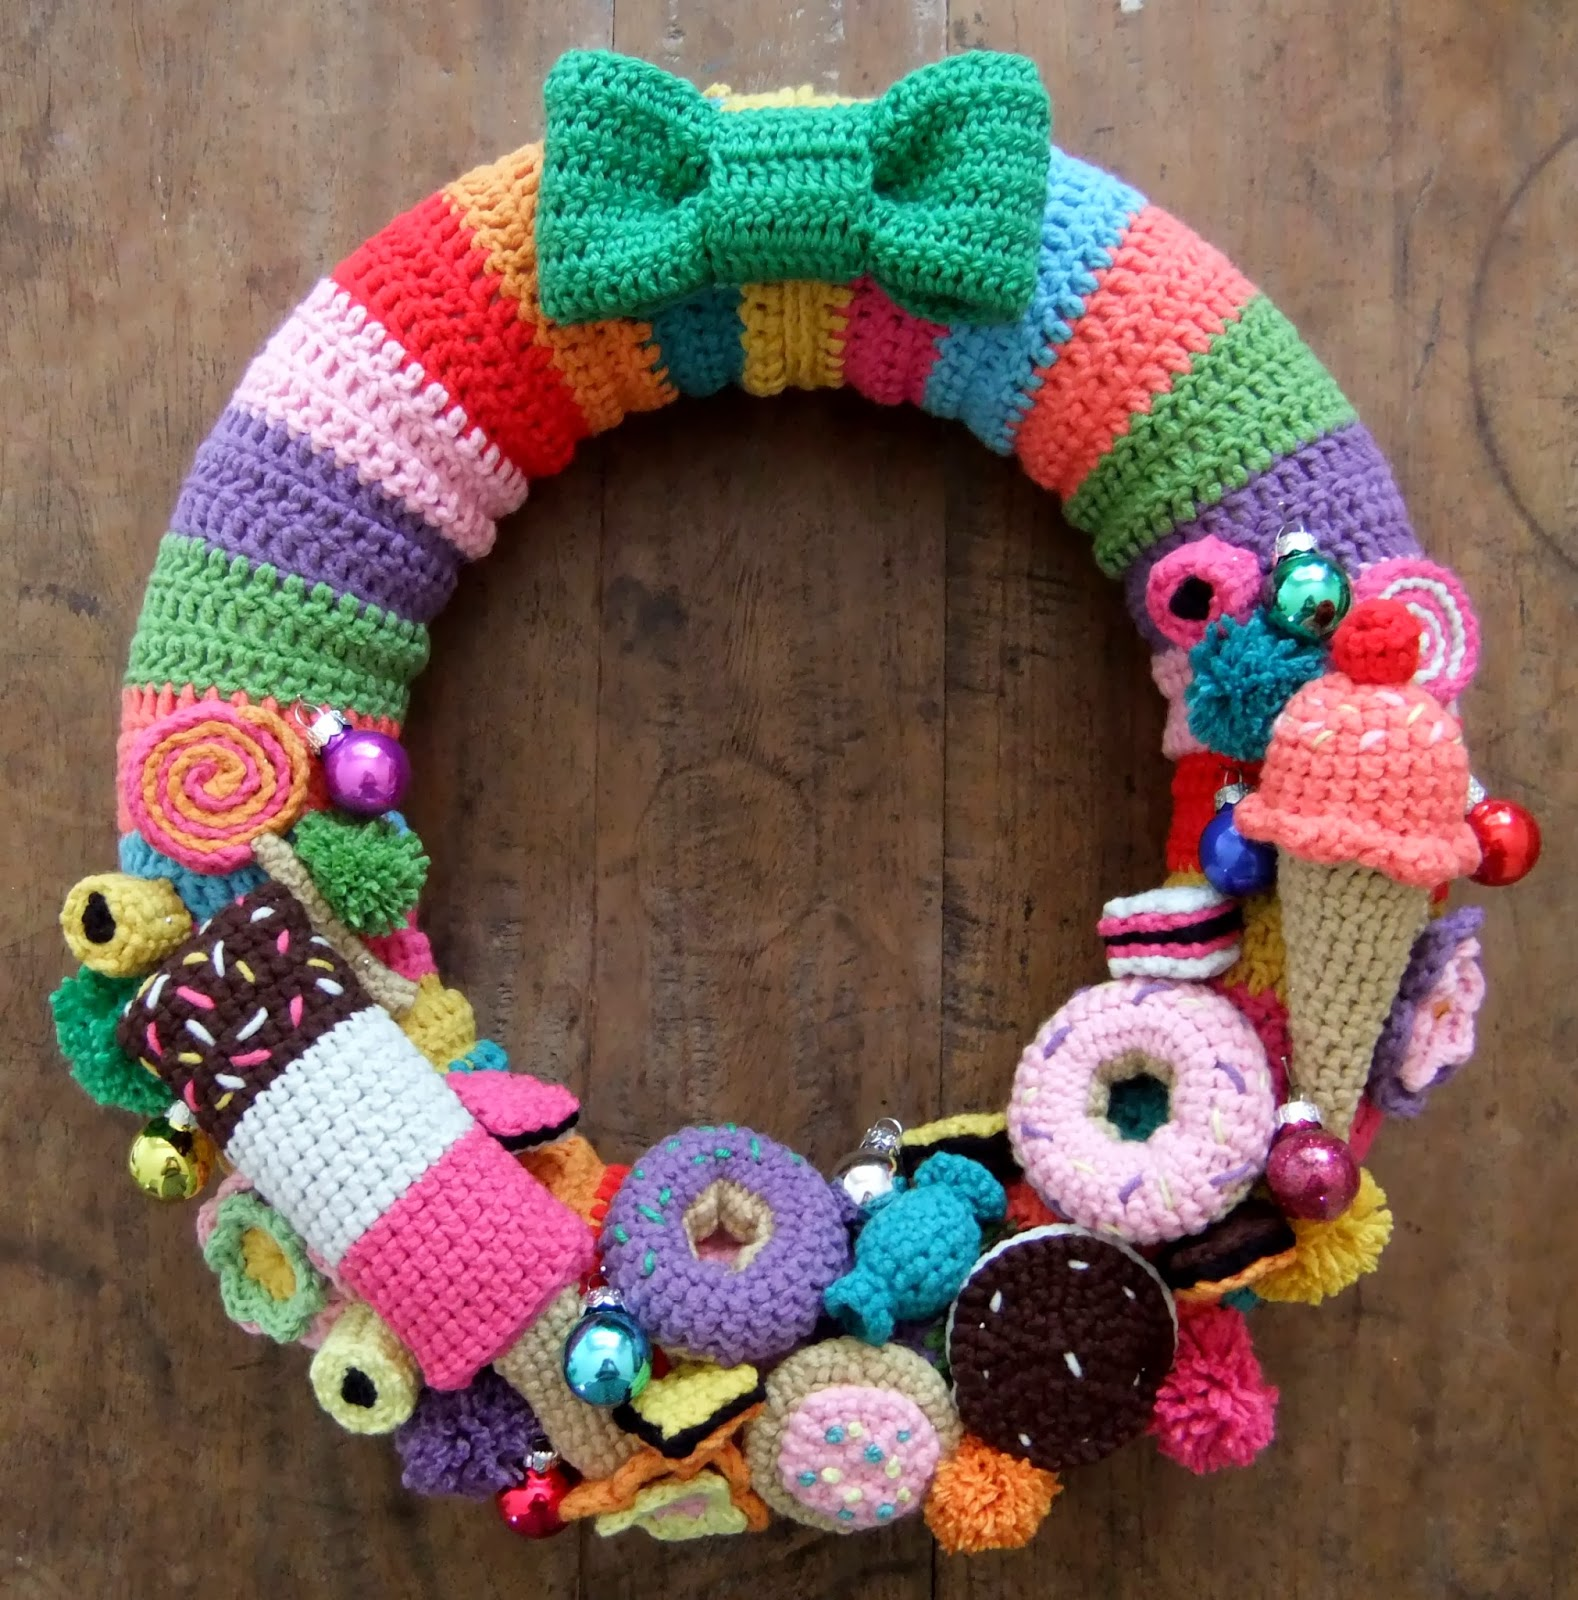 I Love Buttons By Emma: Crochet Christmas Wreath